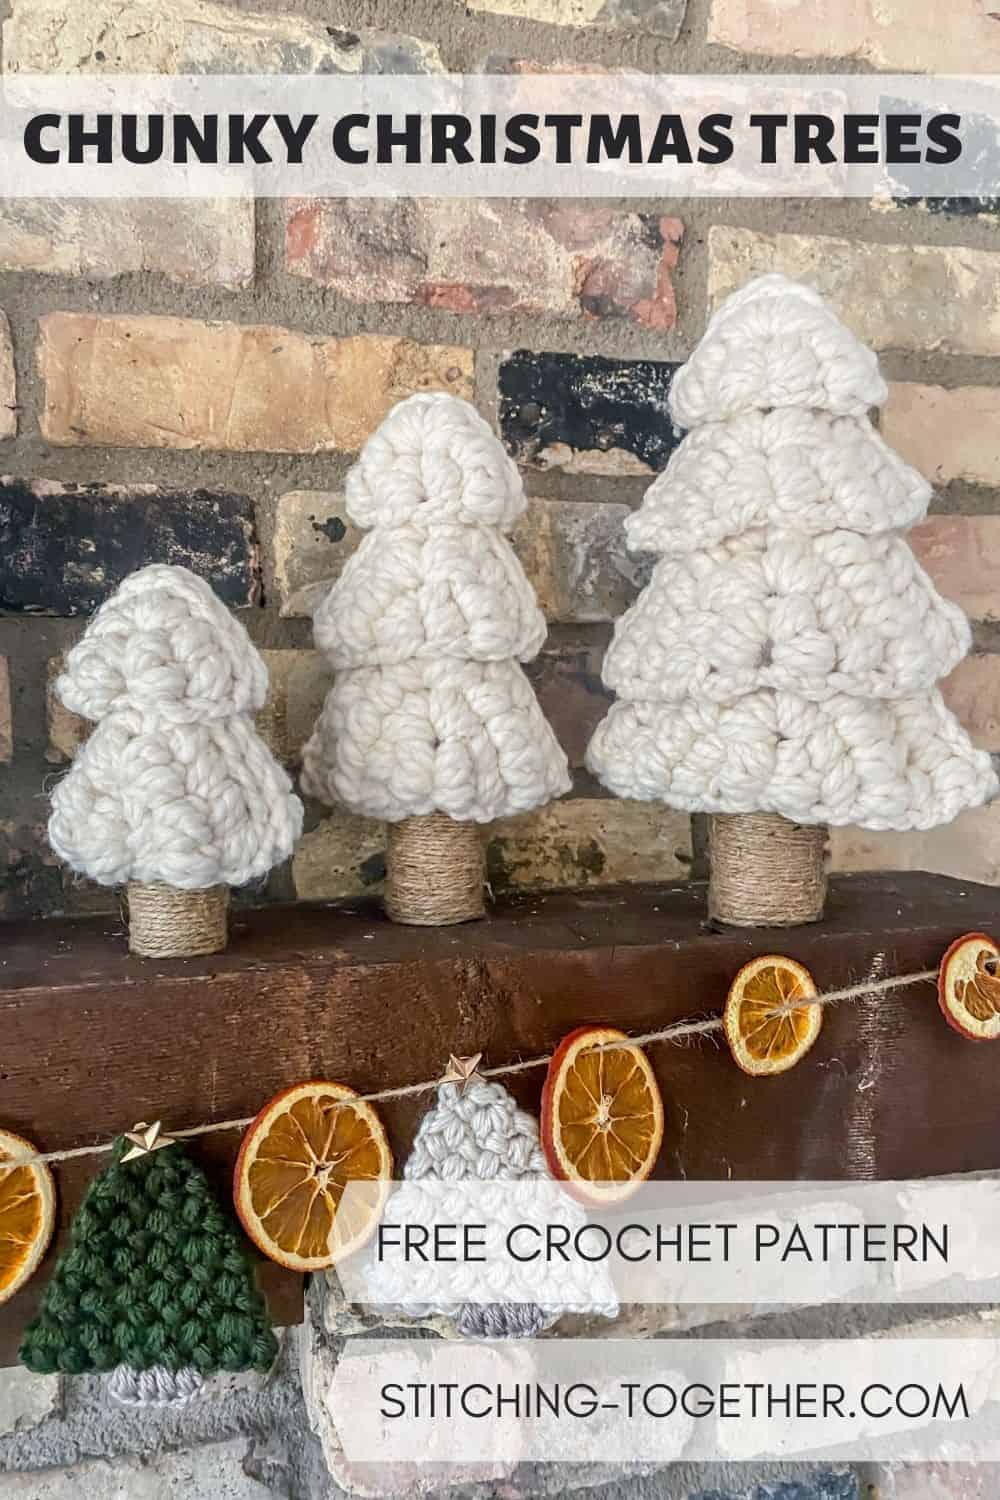 pin image of 3 white crochet christmas trees on a mantle